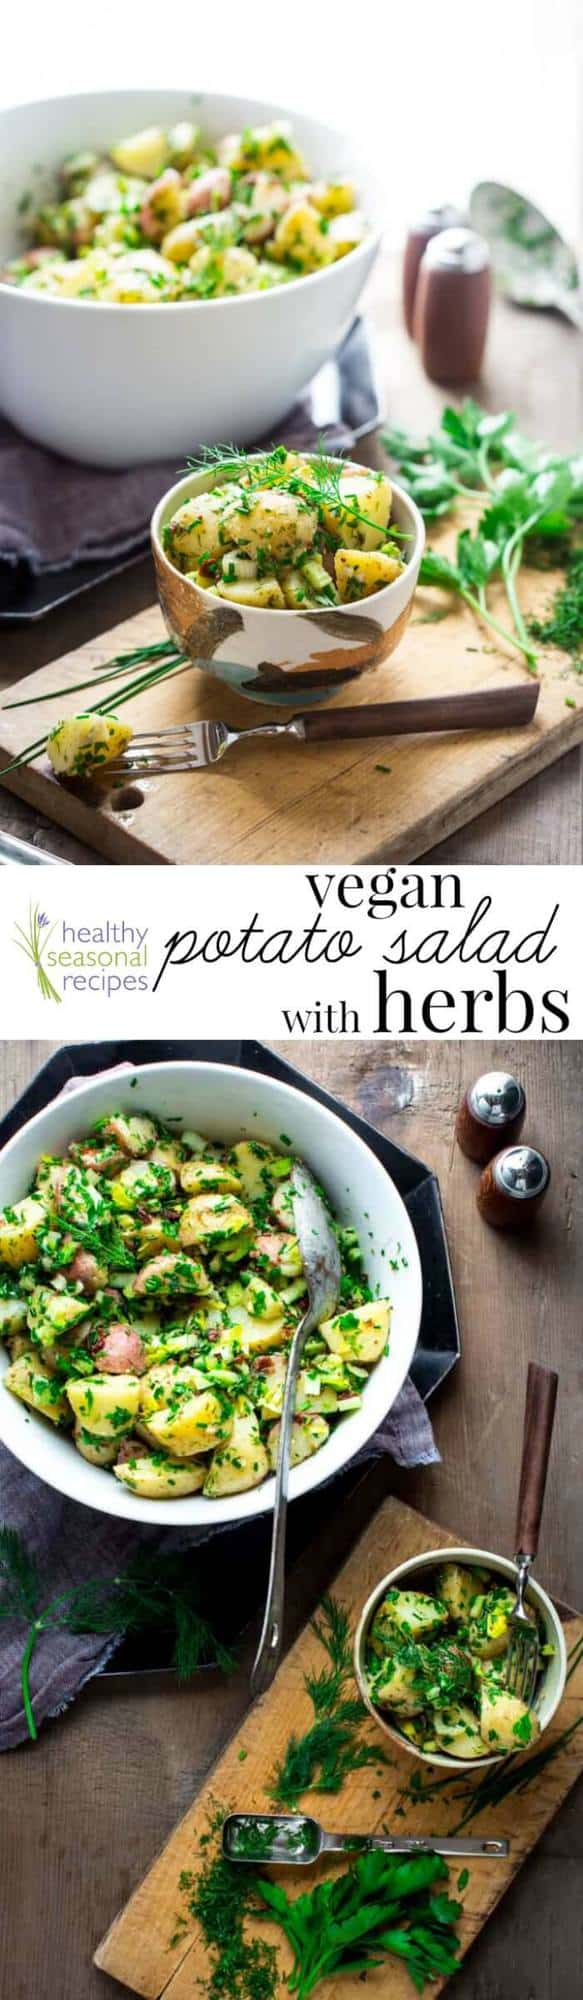 Vegan Potato Salad with Oil and Vinegar Dressing and tons of fresh herbs. It is a healthy summer side dish everyone will love and there is no mayonnaise! #vegan #potatosalad #healthy #glutenfree #potatoes #sidedish #potluck #barbecue #Cleaneating